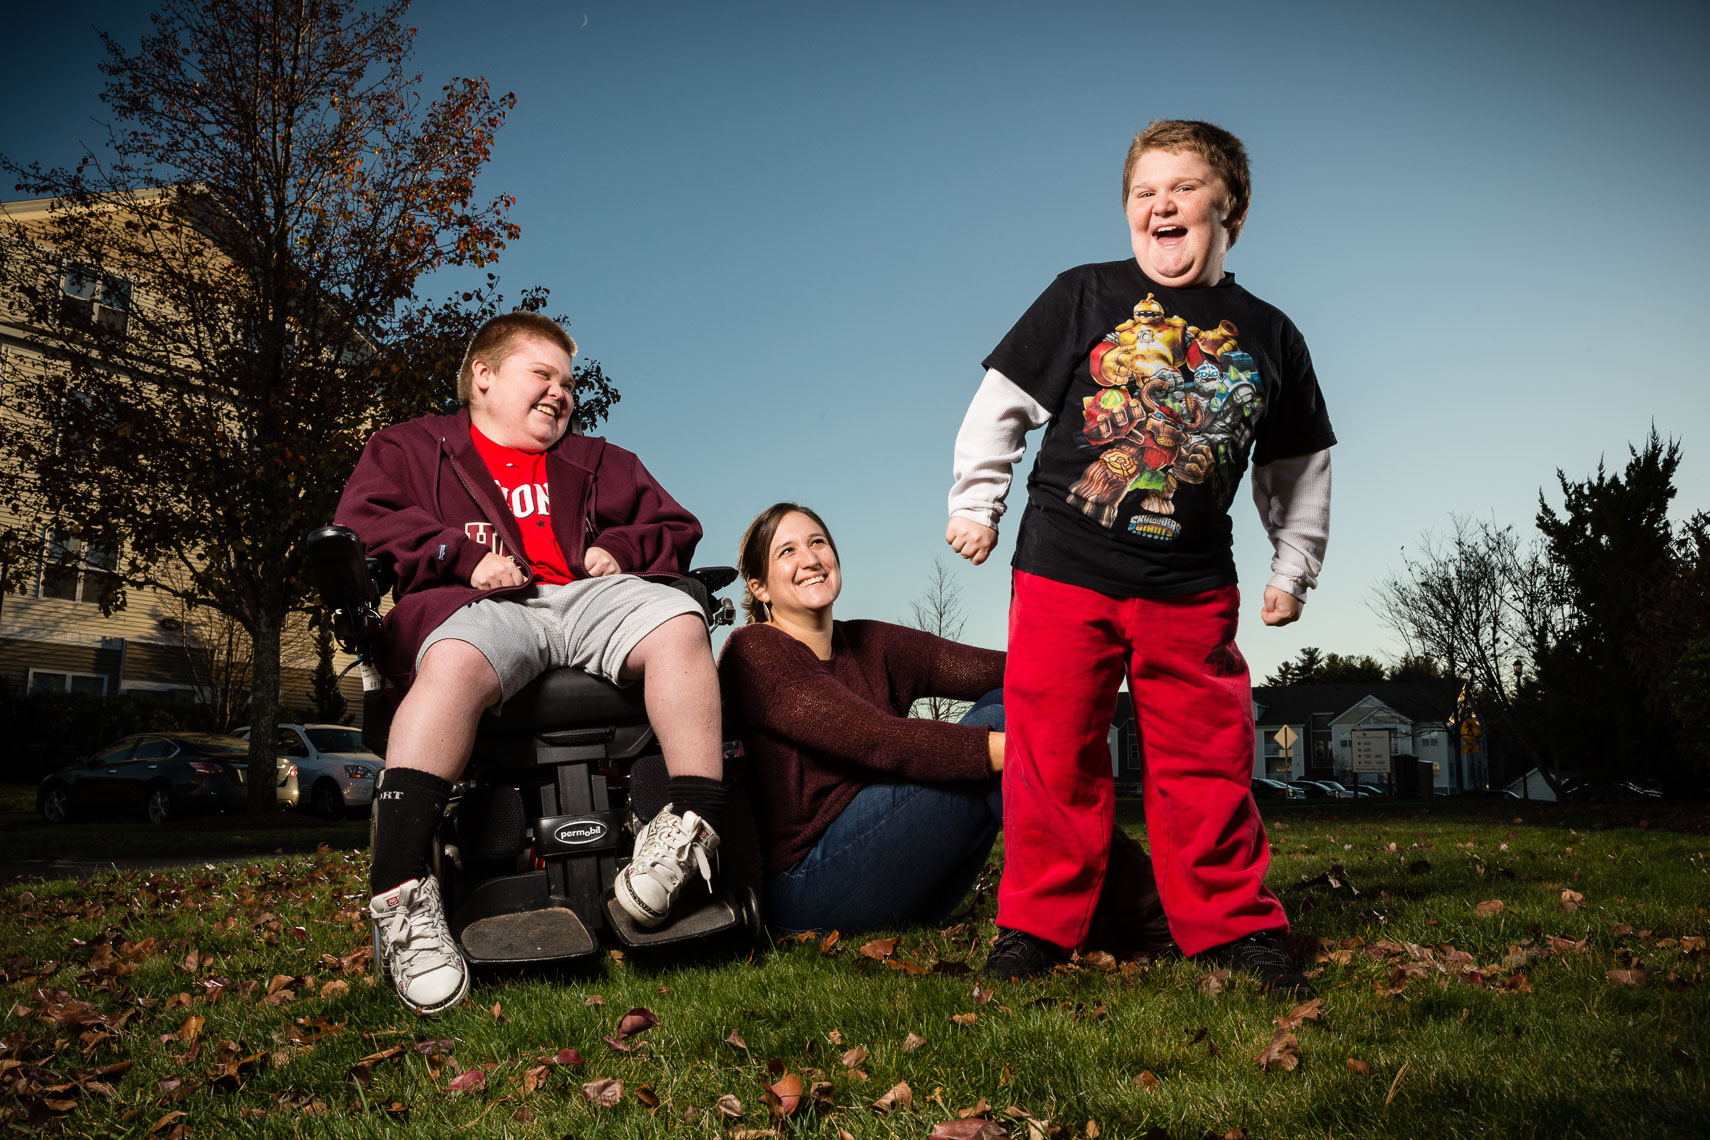 Jenn McNary with sons Austin and Max Leclaire, both with Duchenne Muscular Dystrophy, for Barron